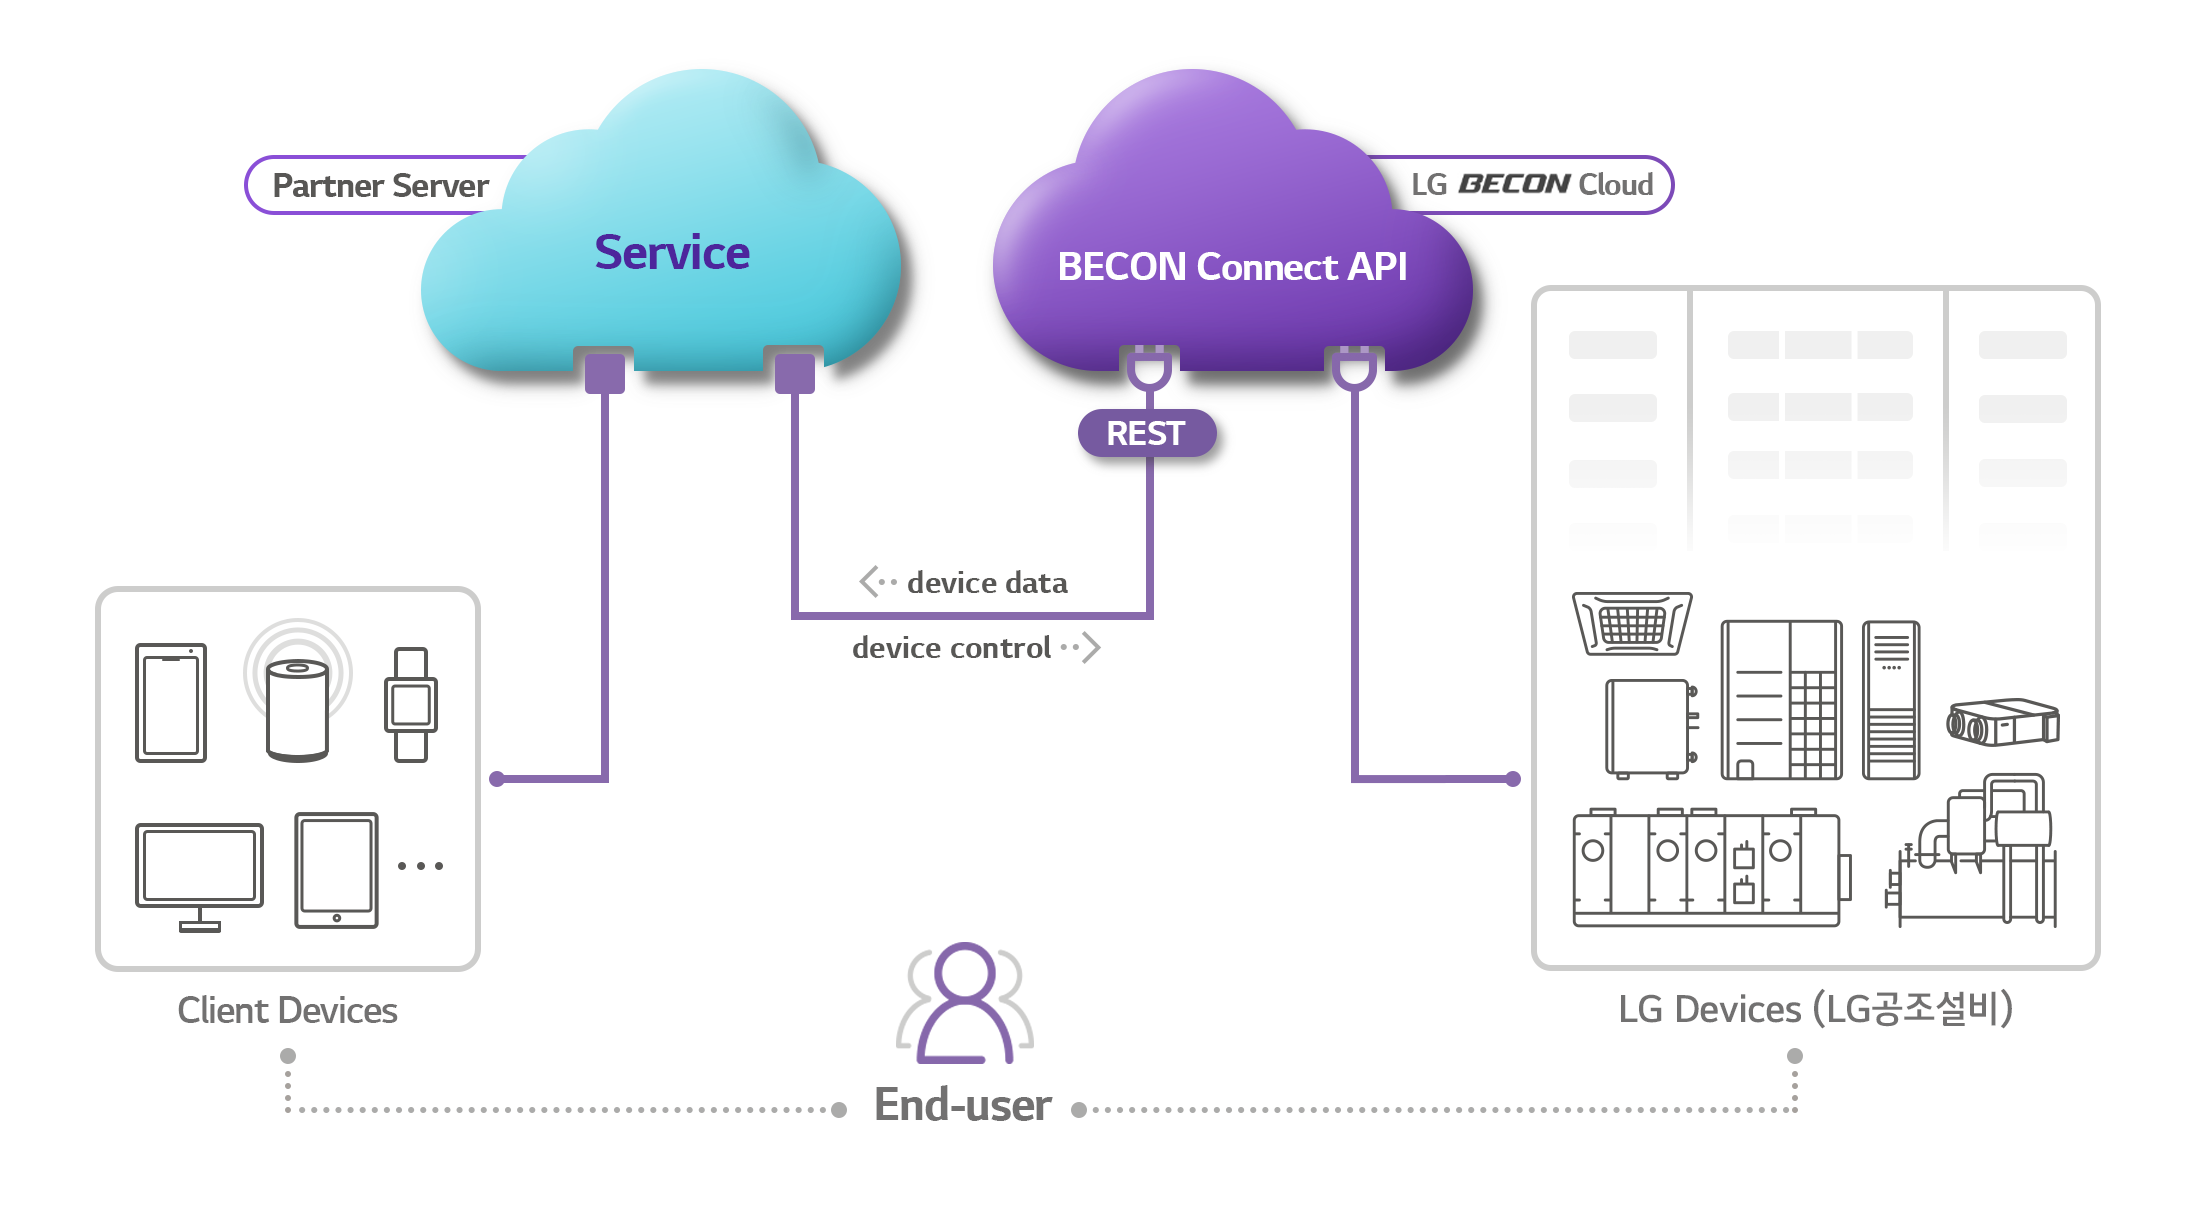 BECON Connect concept diagram